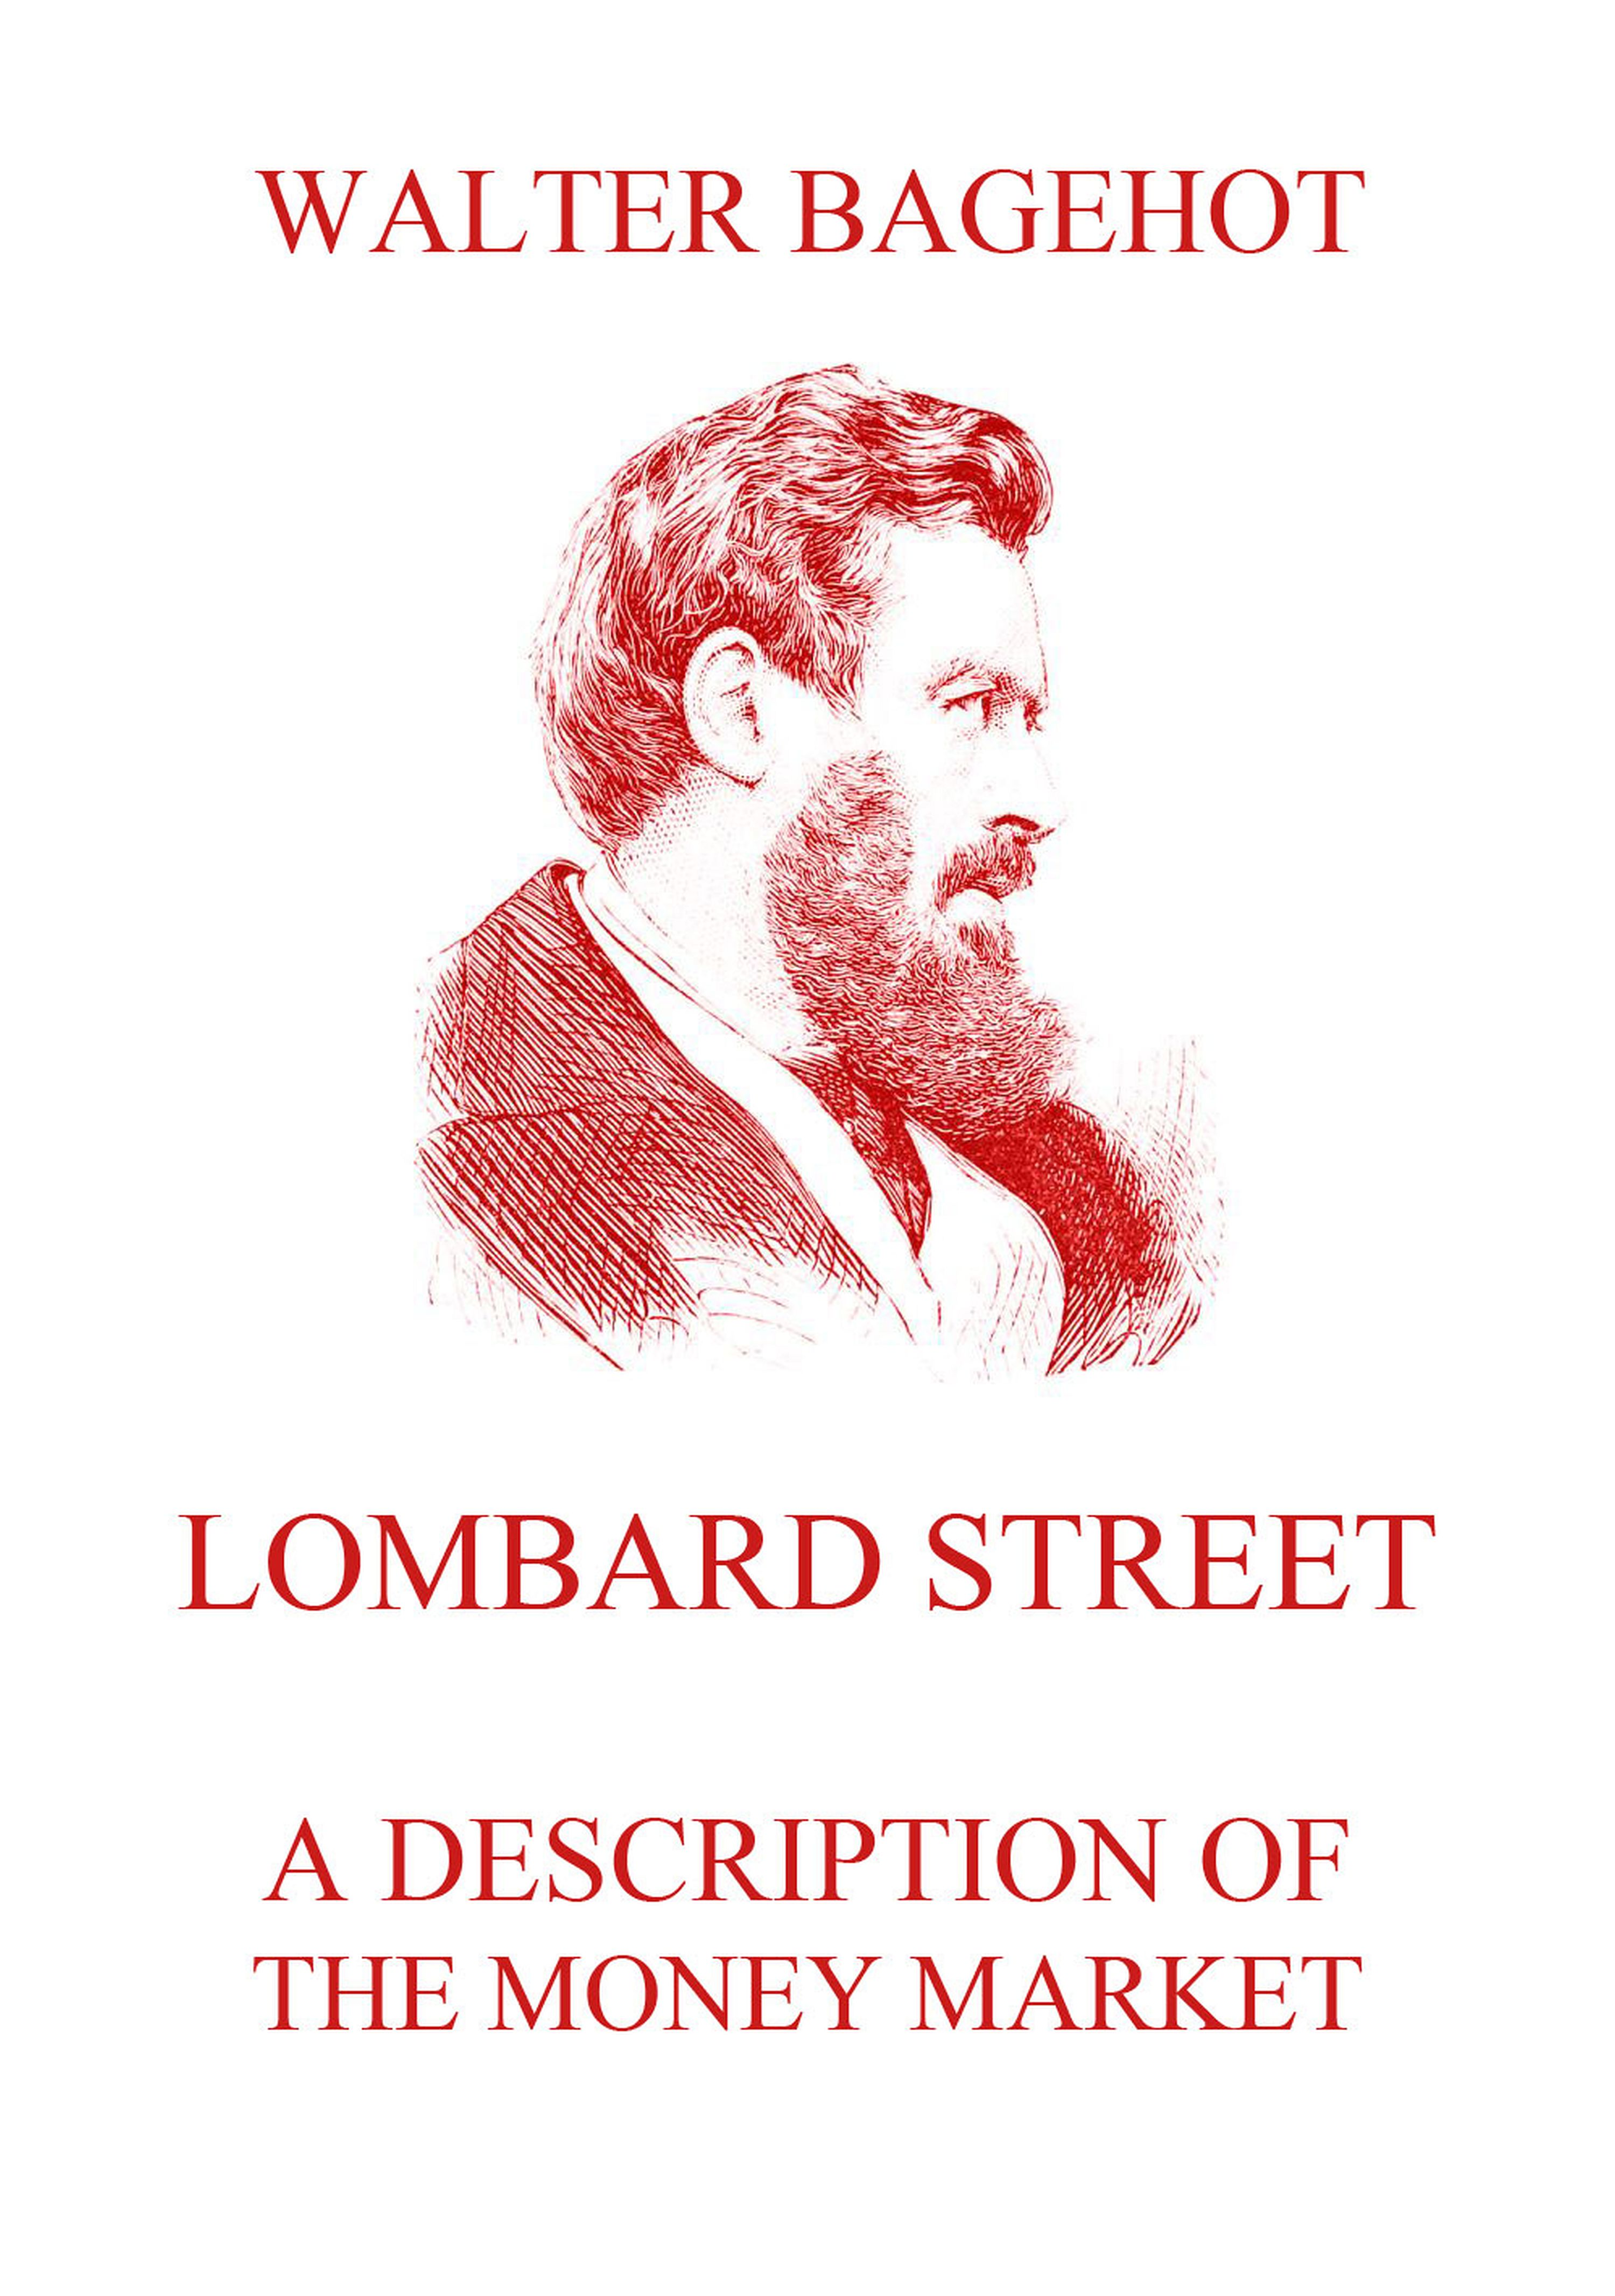 Walter Bagehot Lombard Street - A Description of the Money Market